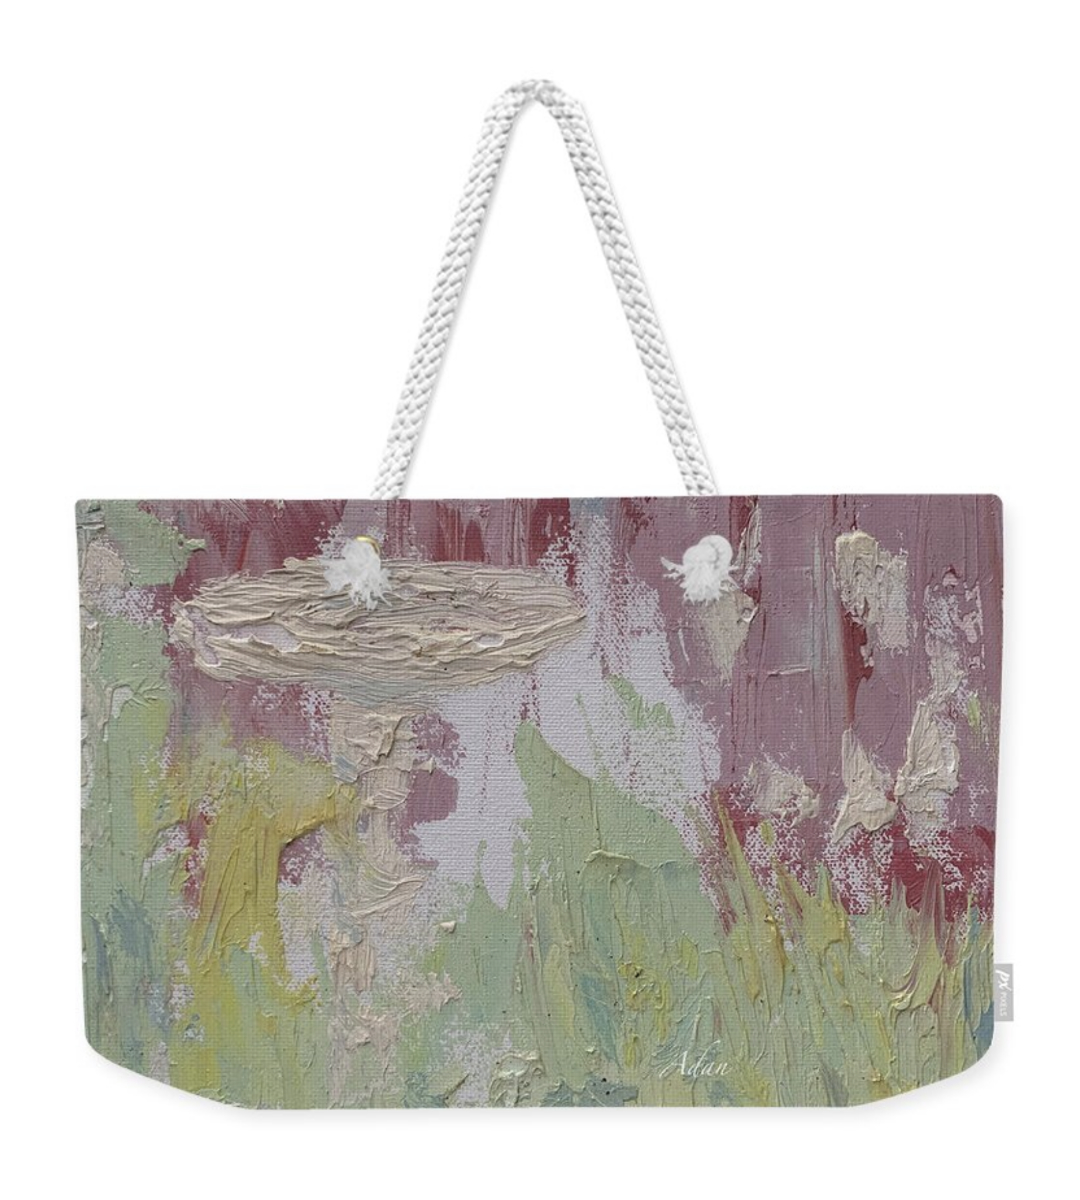 Weekender Tote Bag Image: The Bird Bath © Felipe Adan Lerma https://fineartamerica.com/featured/the-bird-bath-felipe-adan-lerma.html?product=weekender-totebag